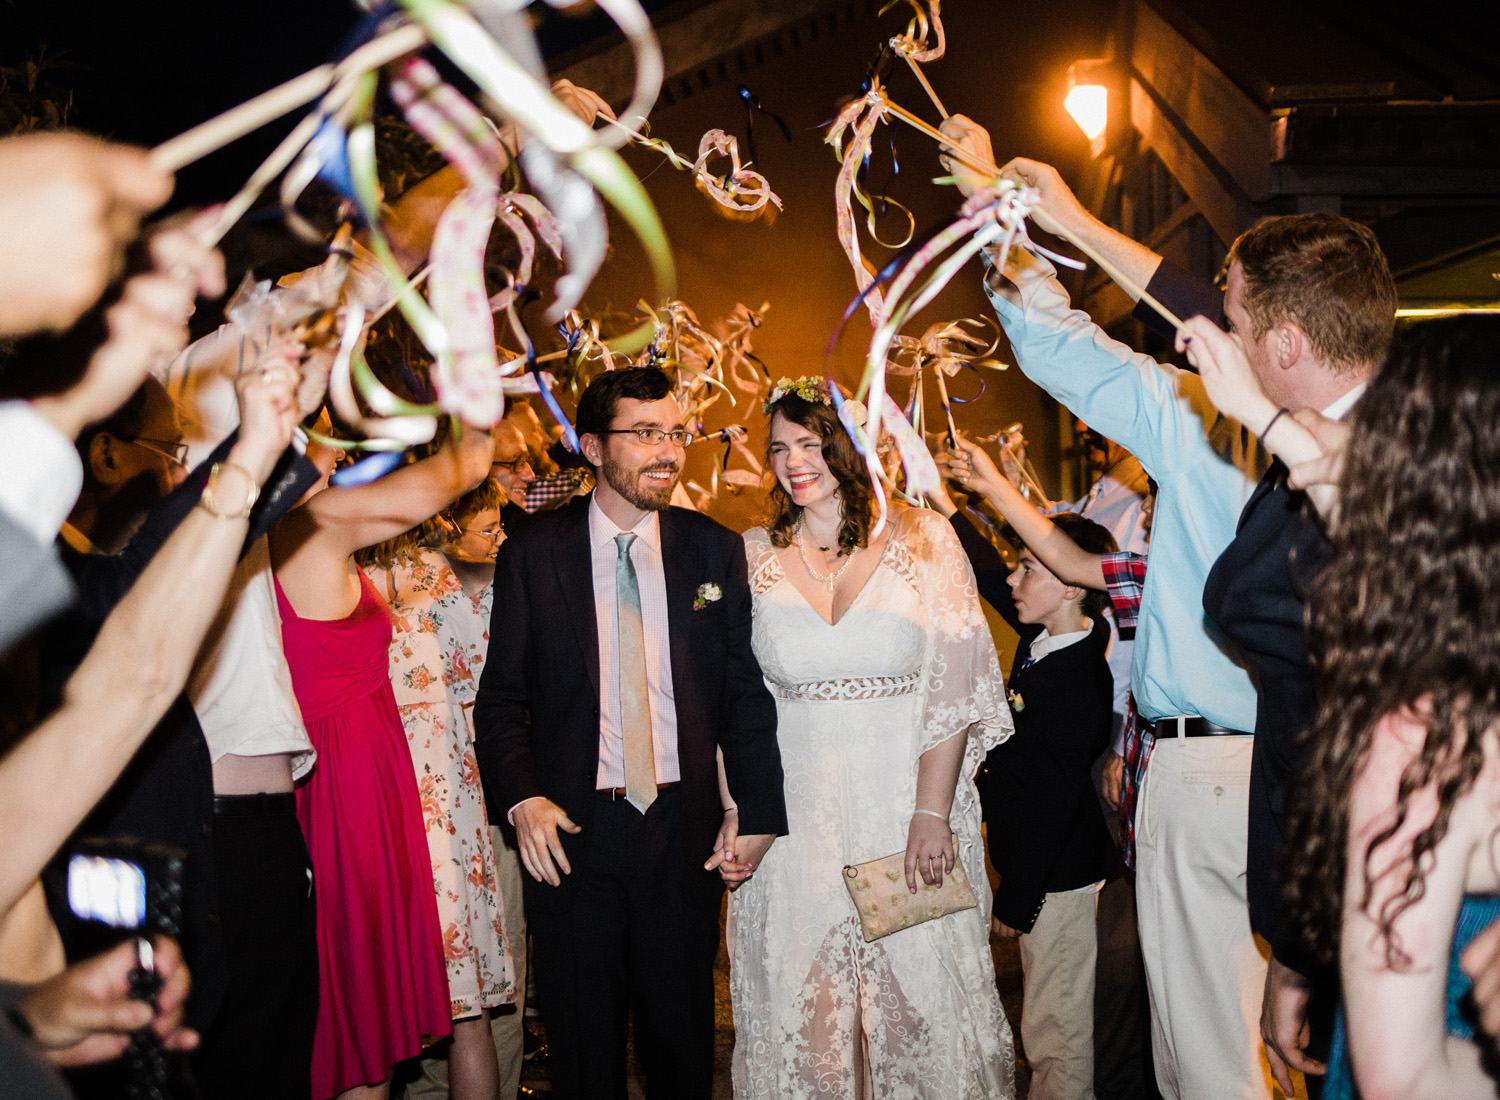 University of Washington Center for Urban Horticulture Wedding Reception Grand Exit with Ribbon Wands